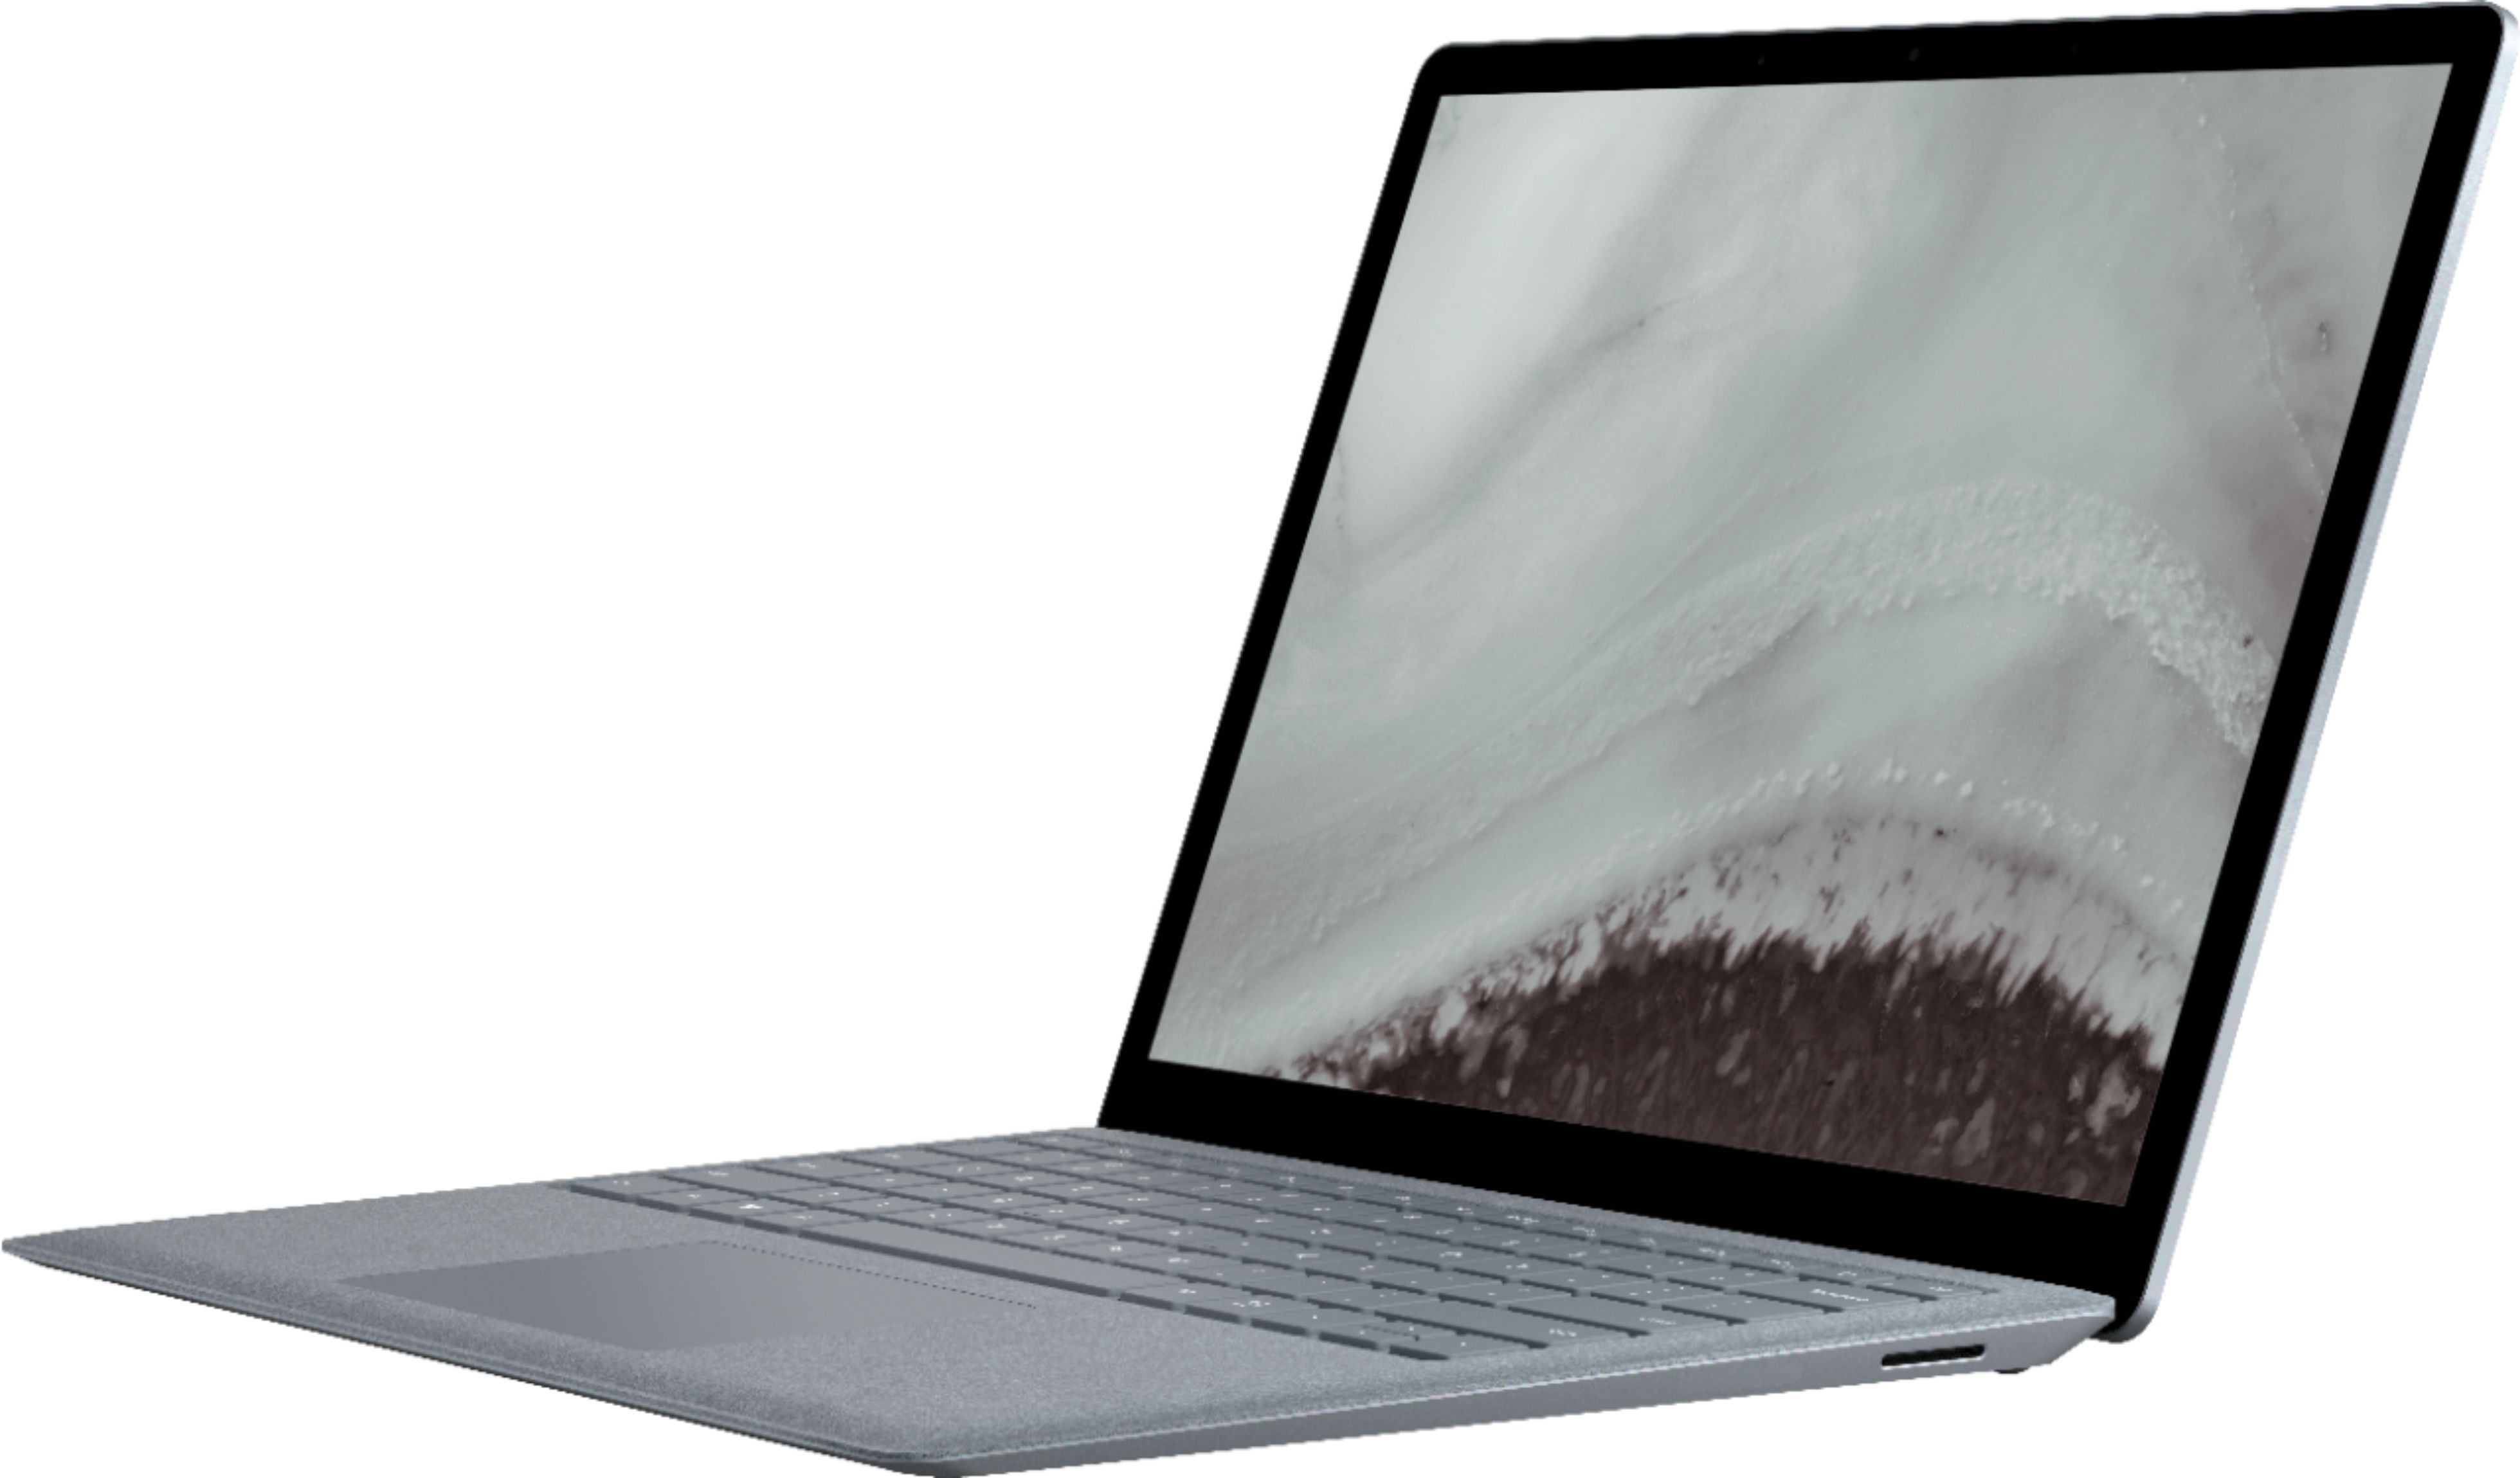 """Front Zoom. Microsoft - Geek Squad Certified Refurbished Surface Laptop 2 - 13.5"""" Touch Screen - Intel Core i5 - 8GB - 256GB SSD - Platinum."""